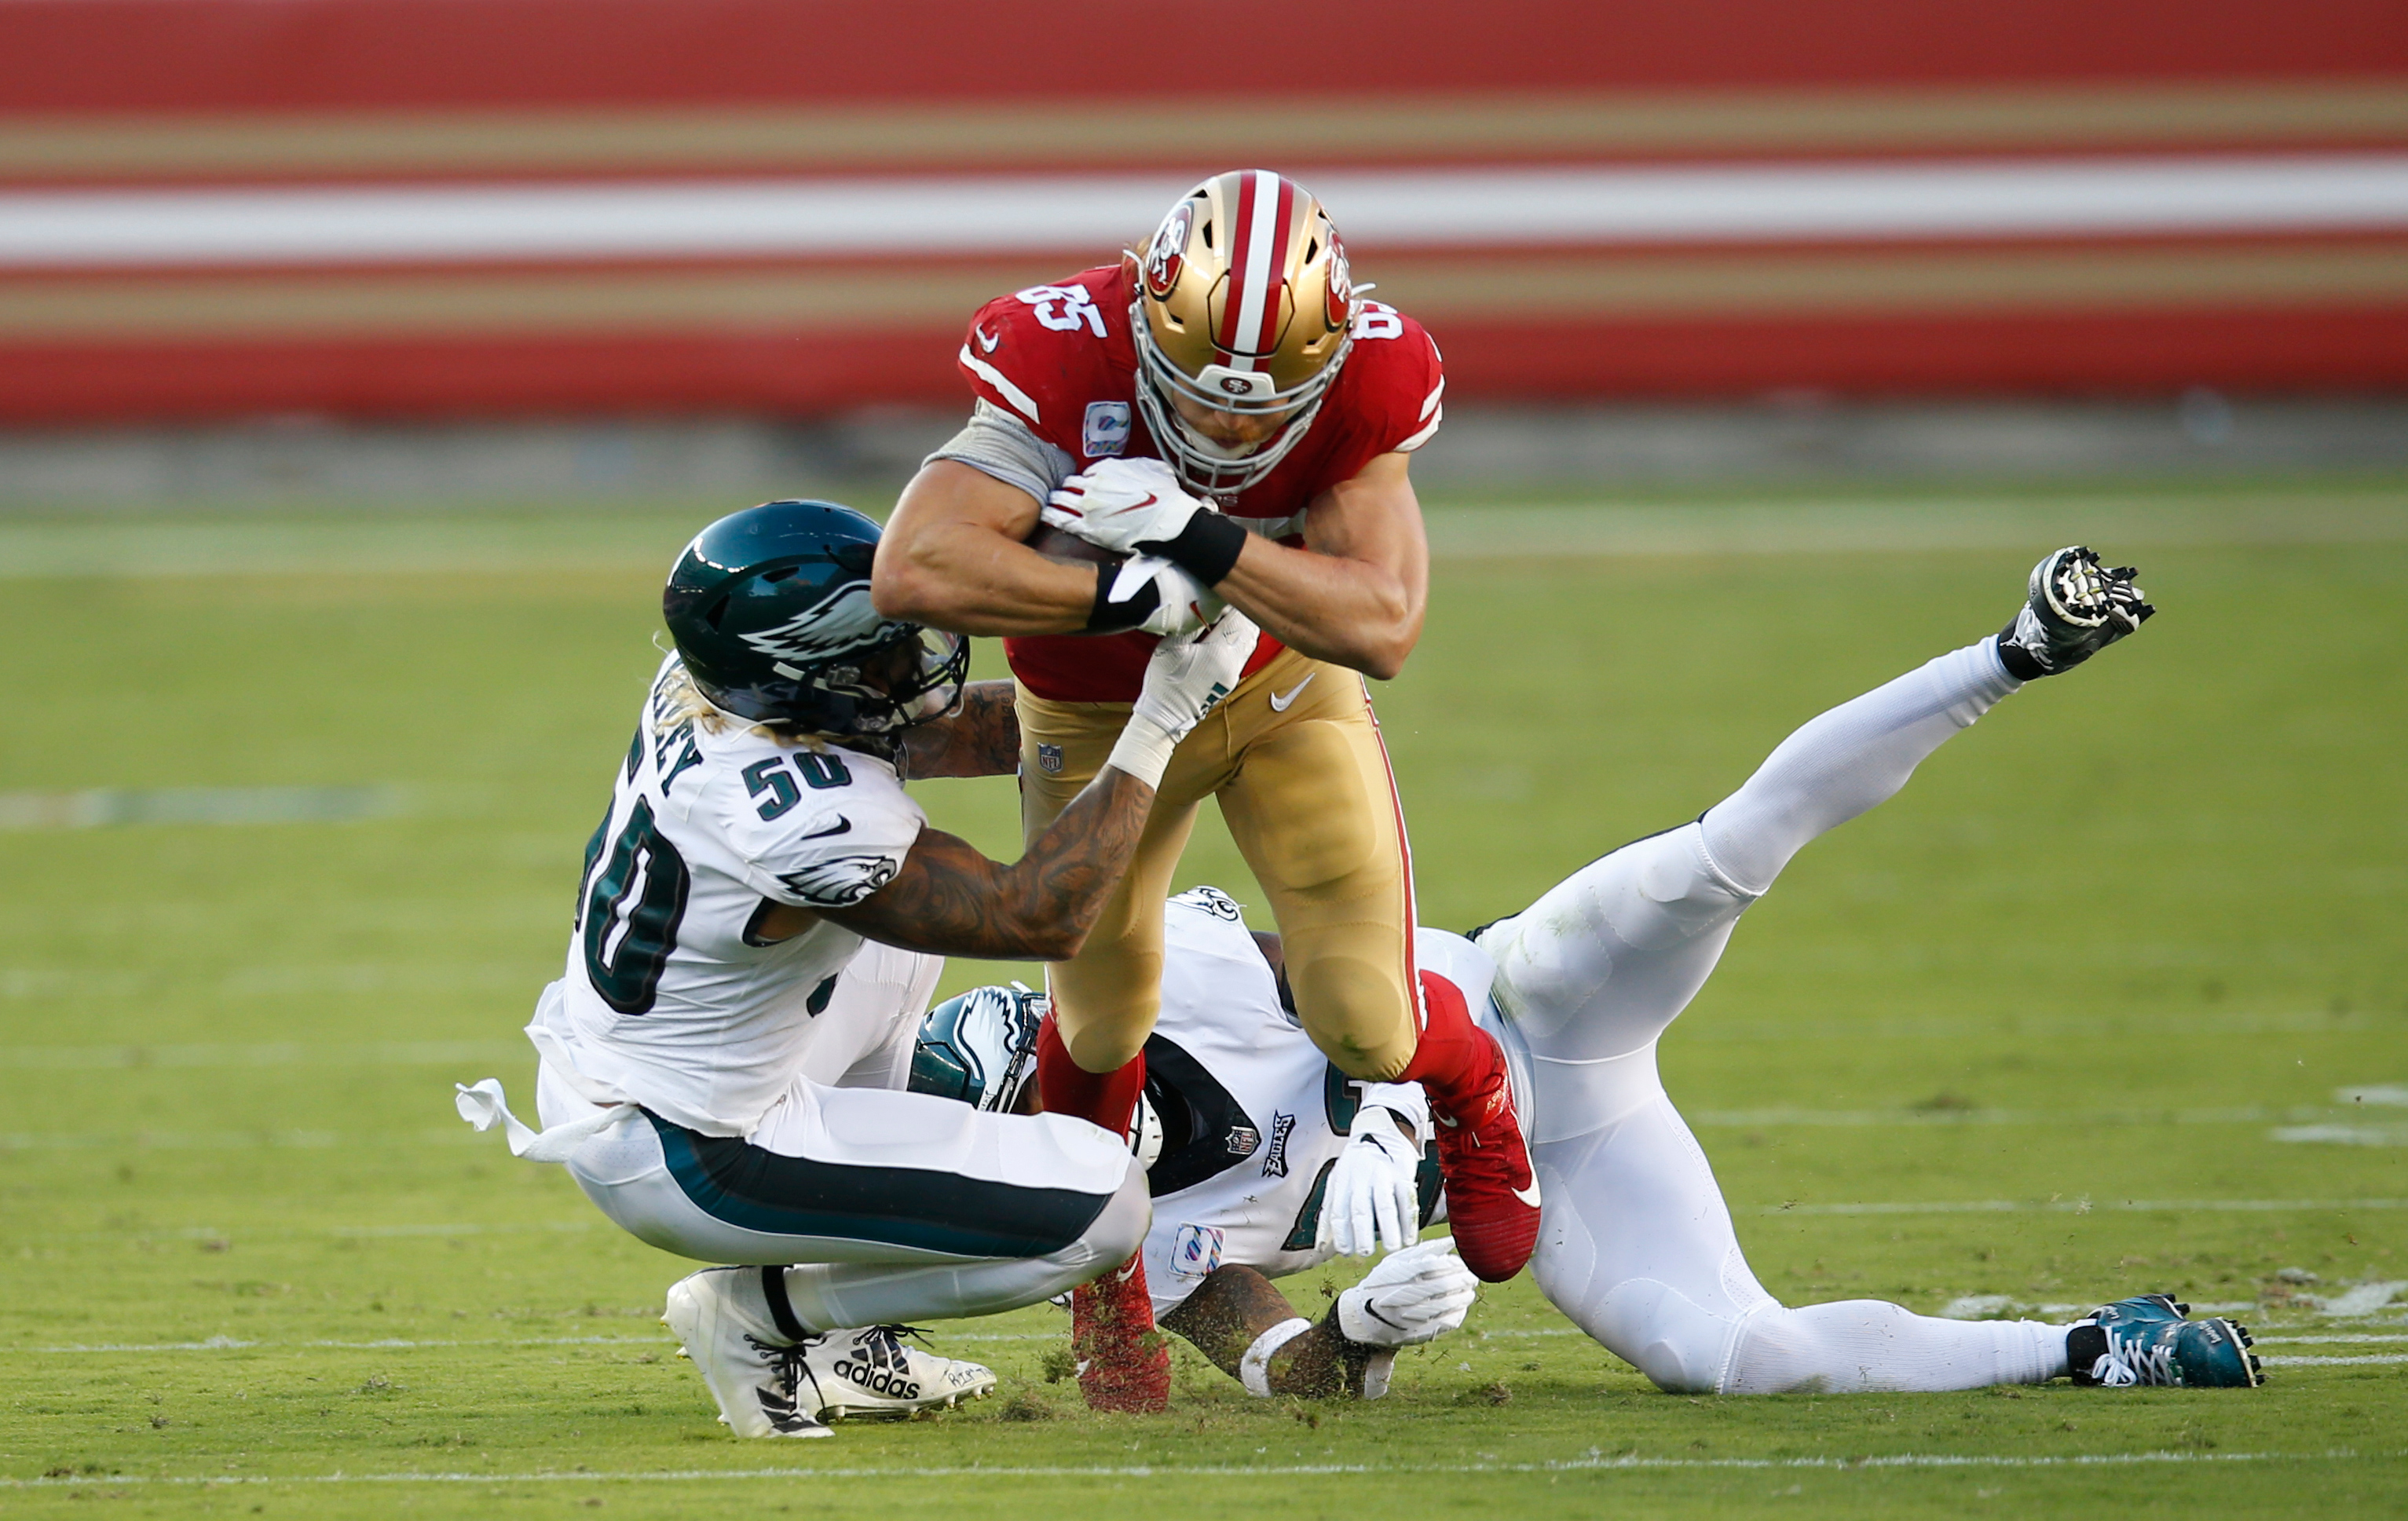 George Kittle #85 of the San Francisco 49ers runs after making a catch during the game against the Philadelphia Eagles at Levi's Stadium on October 4, 2020 in Santa Clara, California.